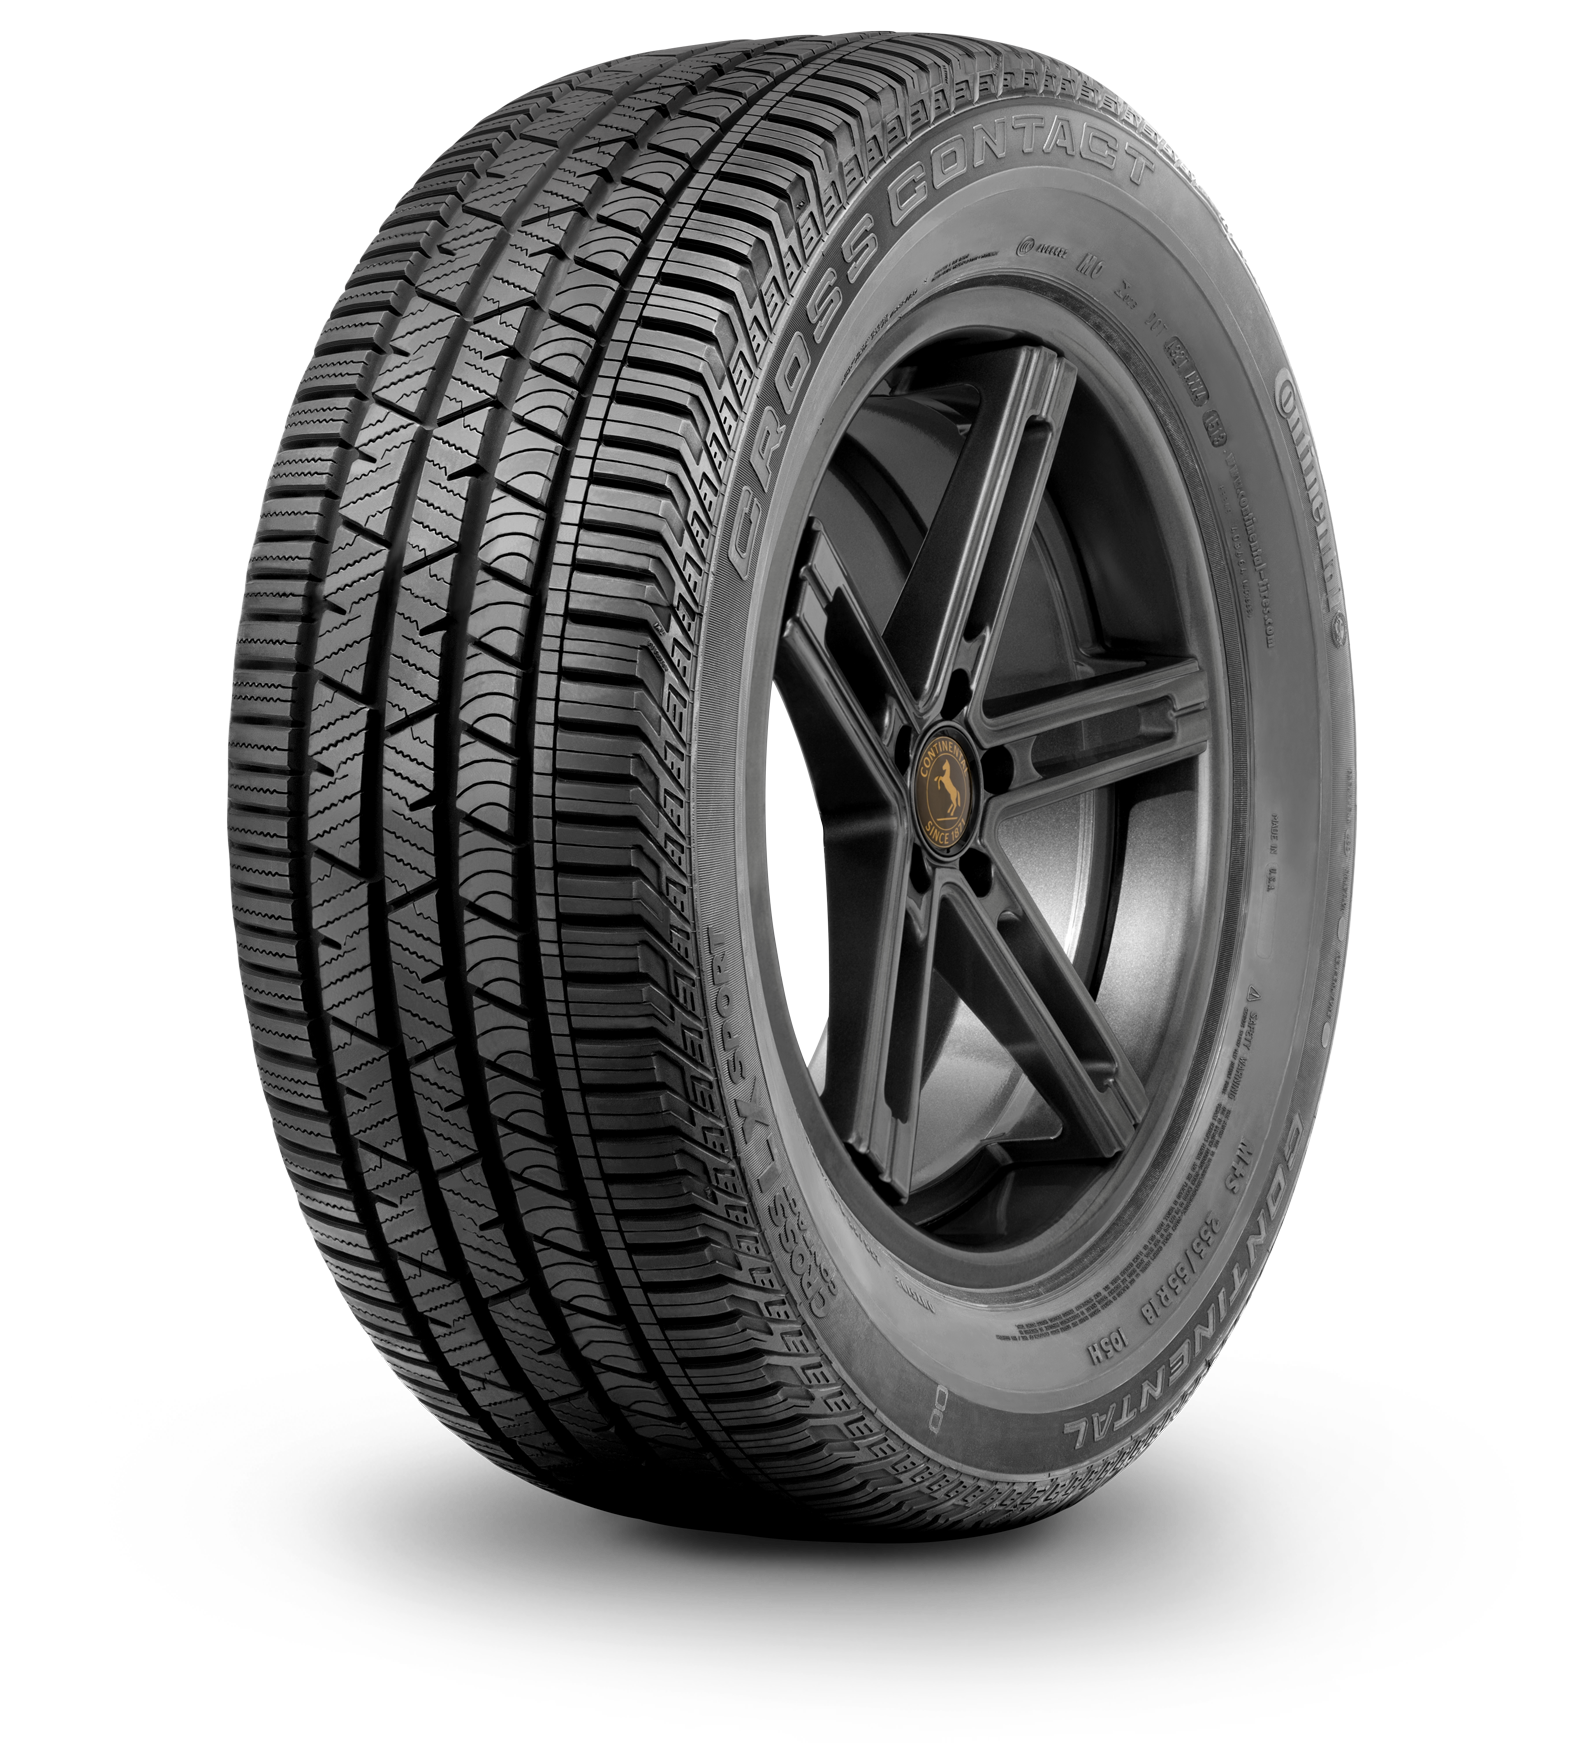 Gomme Nuove Continental 255/60 R18 108W CROSSCONTACT LX SP MGT pneumatici nuovi Estivo